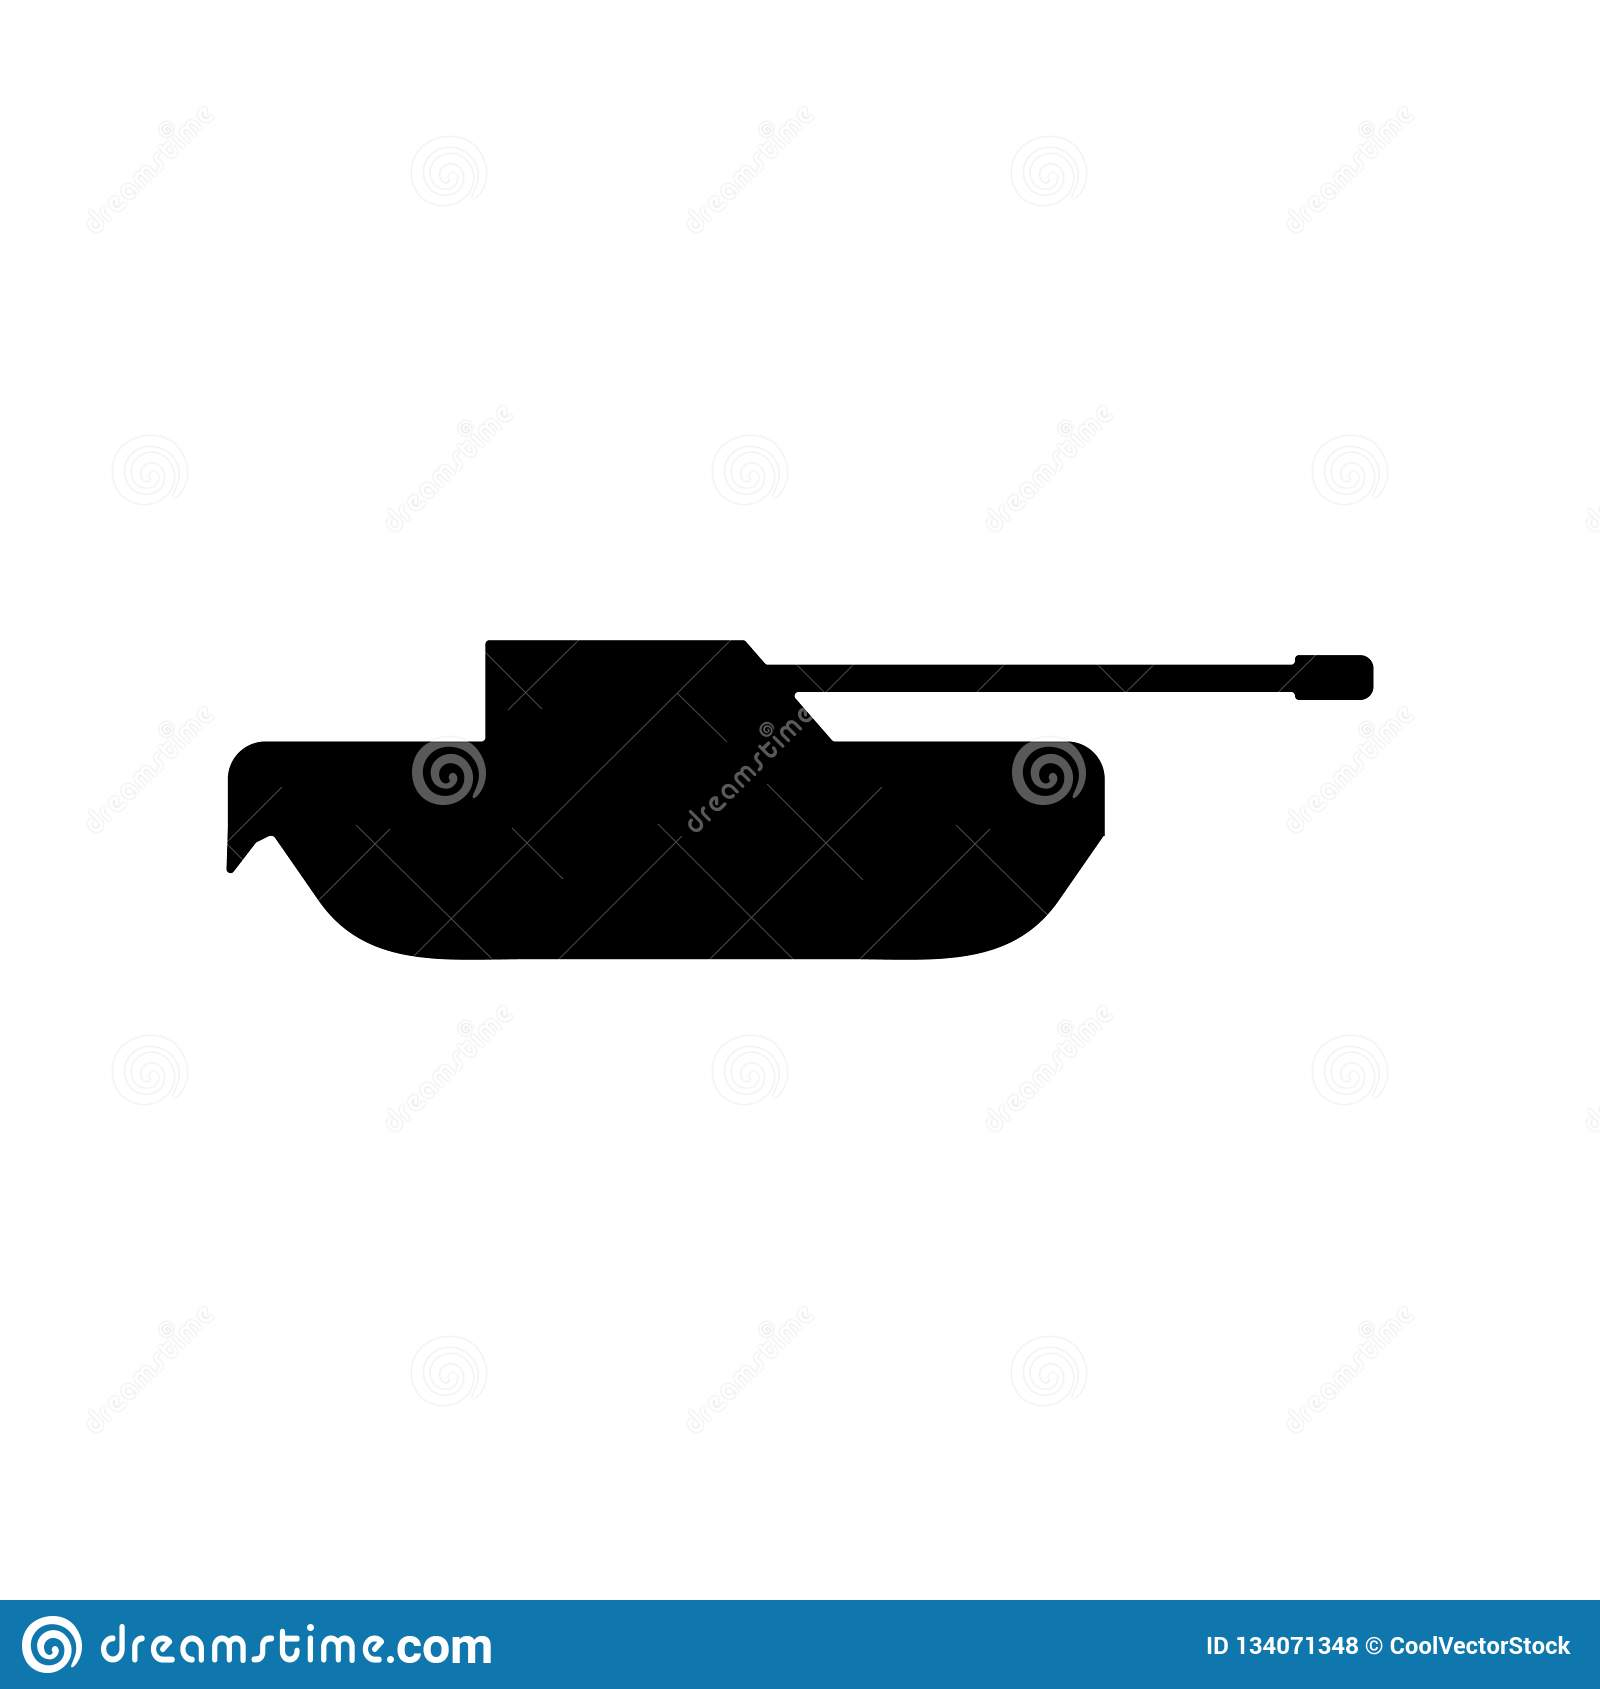 tank icon vector sign and symbol isolated on white background tank logo concept stock vector illustration of color flat 134071348 https www dreamstime com tank icon vector sign symbol isolated white background tank logo concept tank icon vector isolated white background image134071348